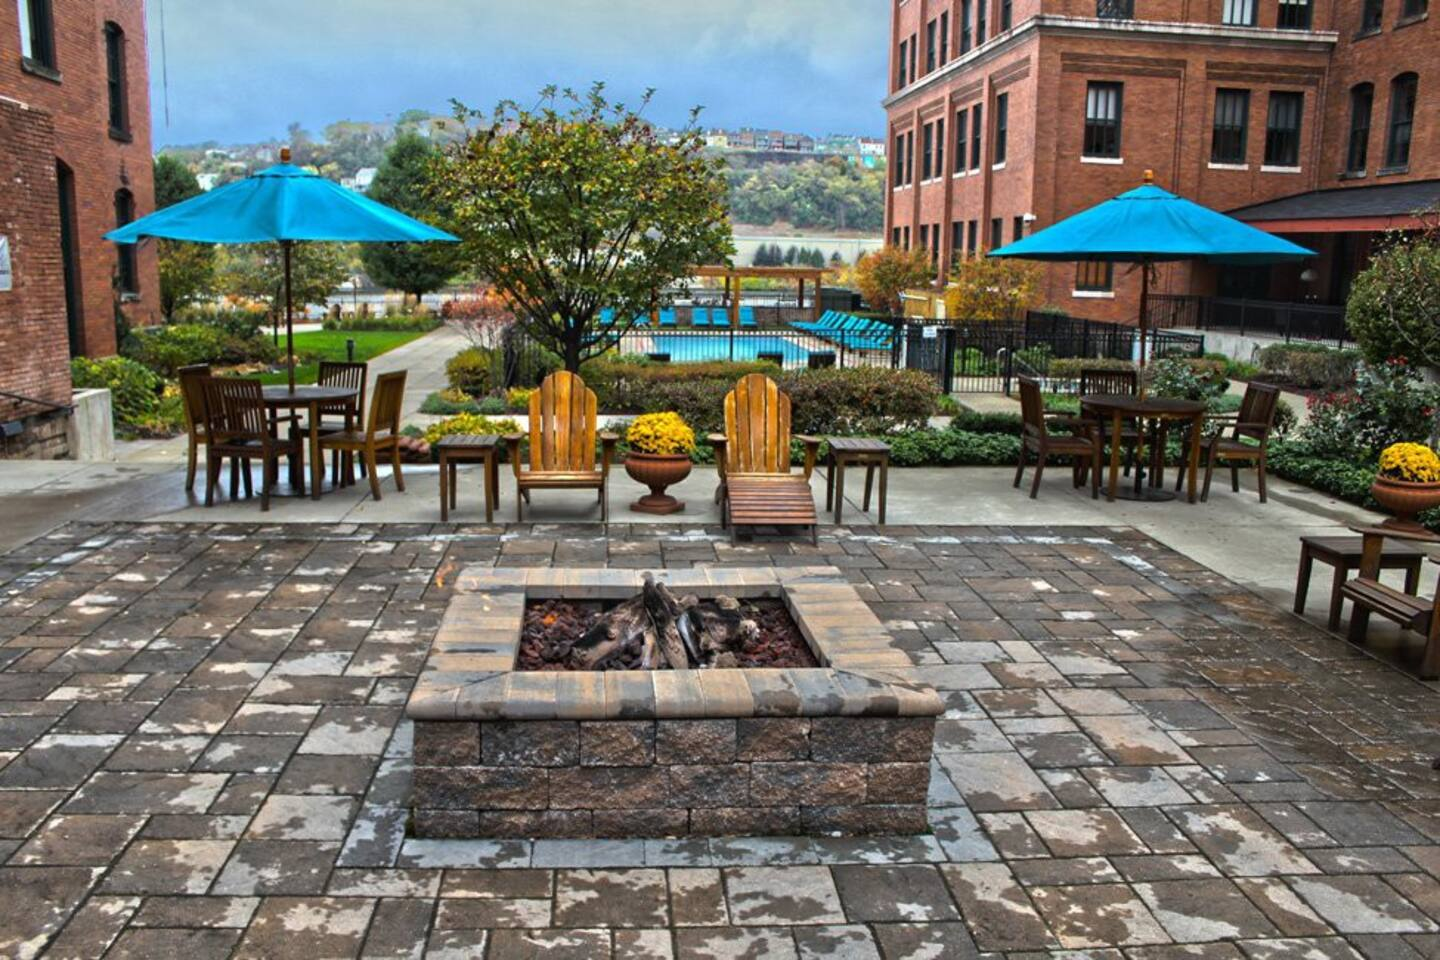 The fire pit in the private courtyard.